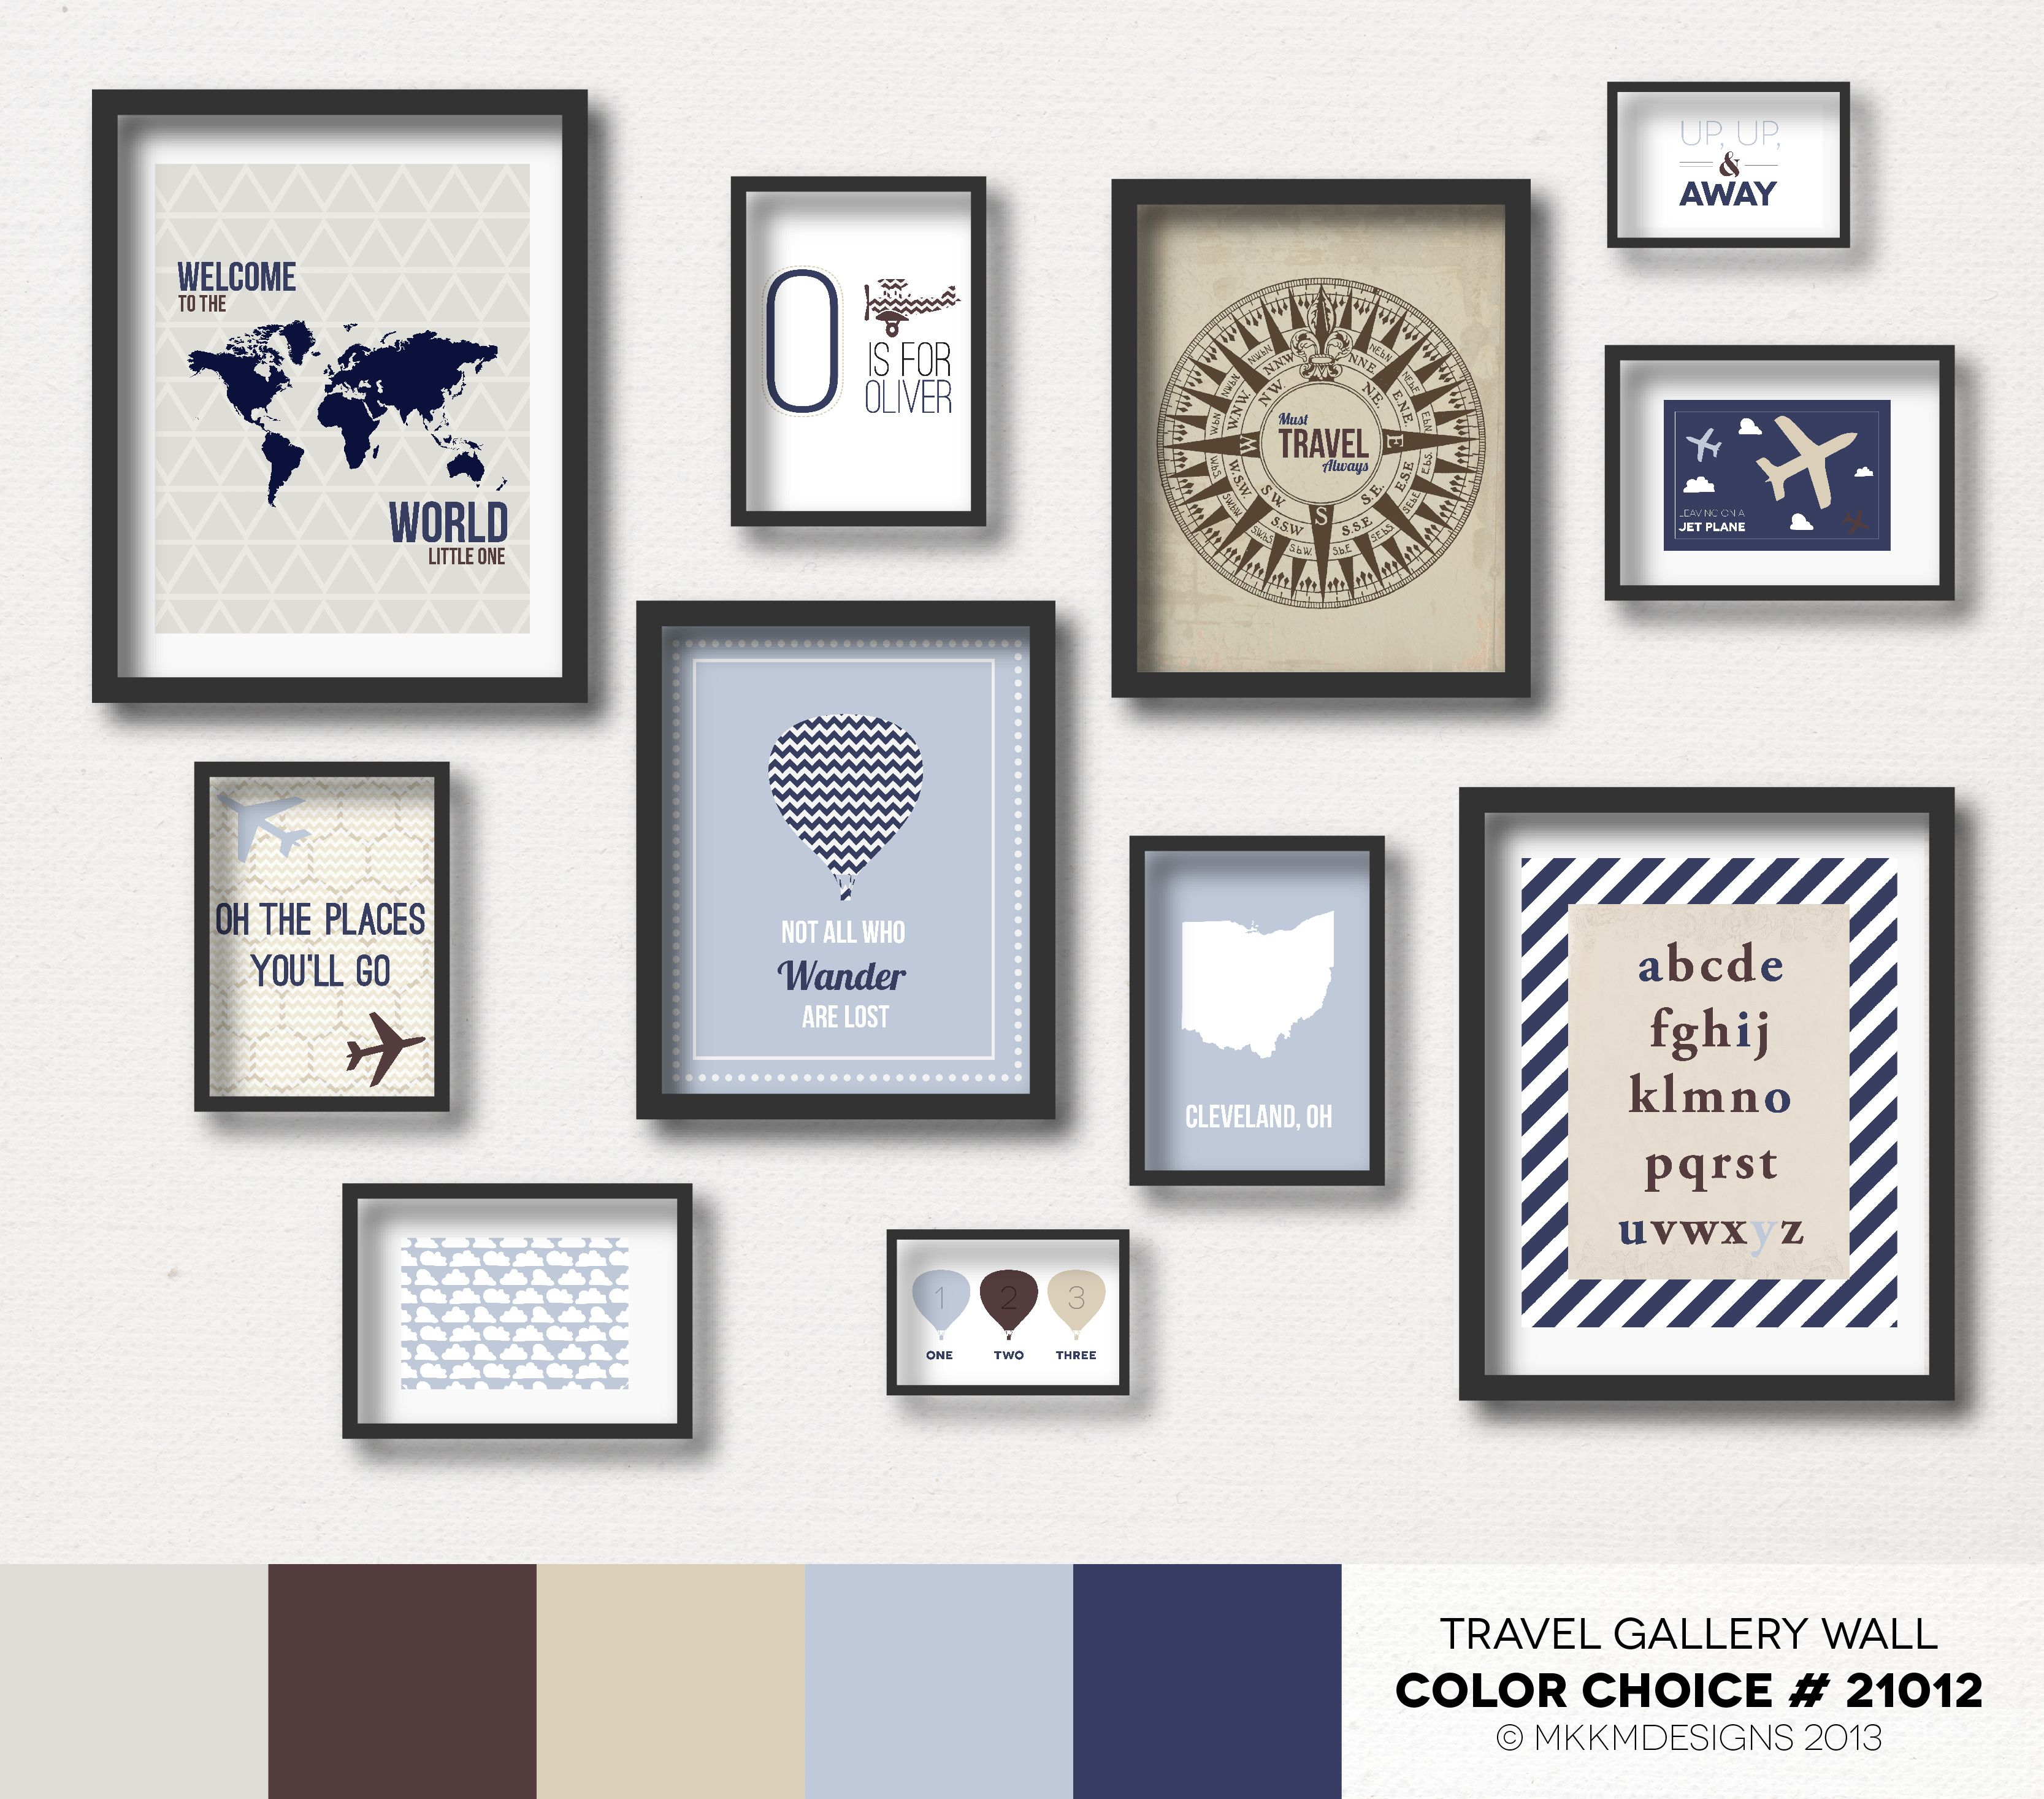 Color of art gallery walls - Travel Nursery Gallery Wall Color Choice 21012 Neutrals Blues And Browns